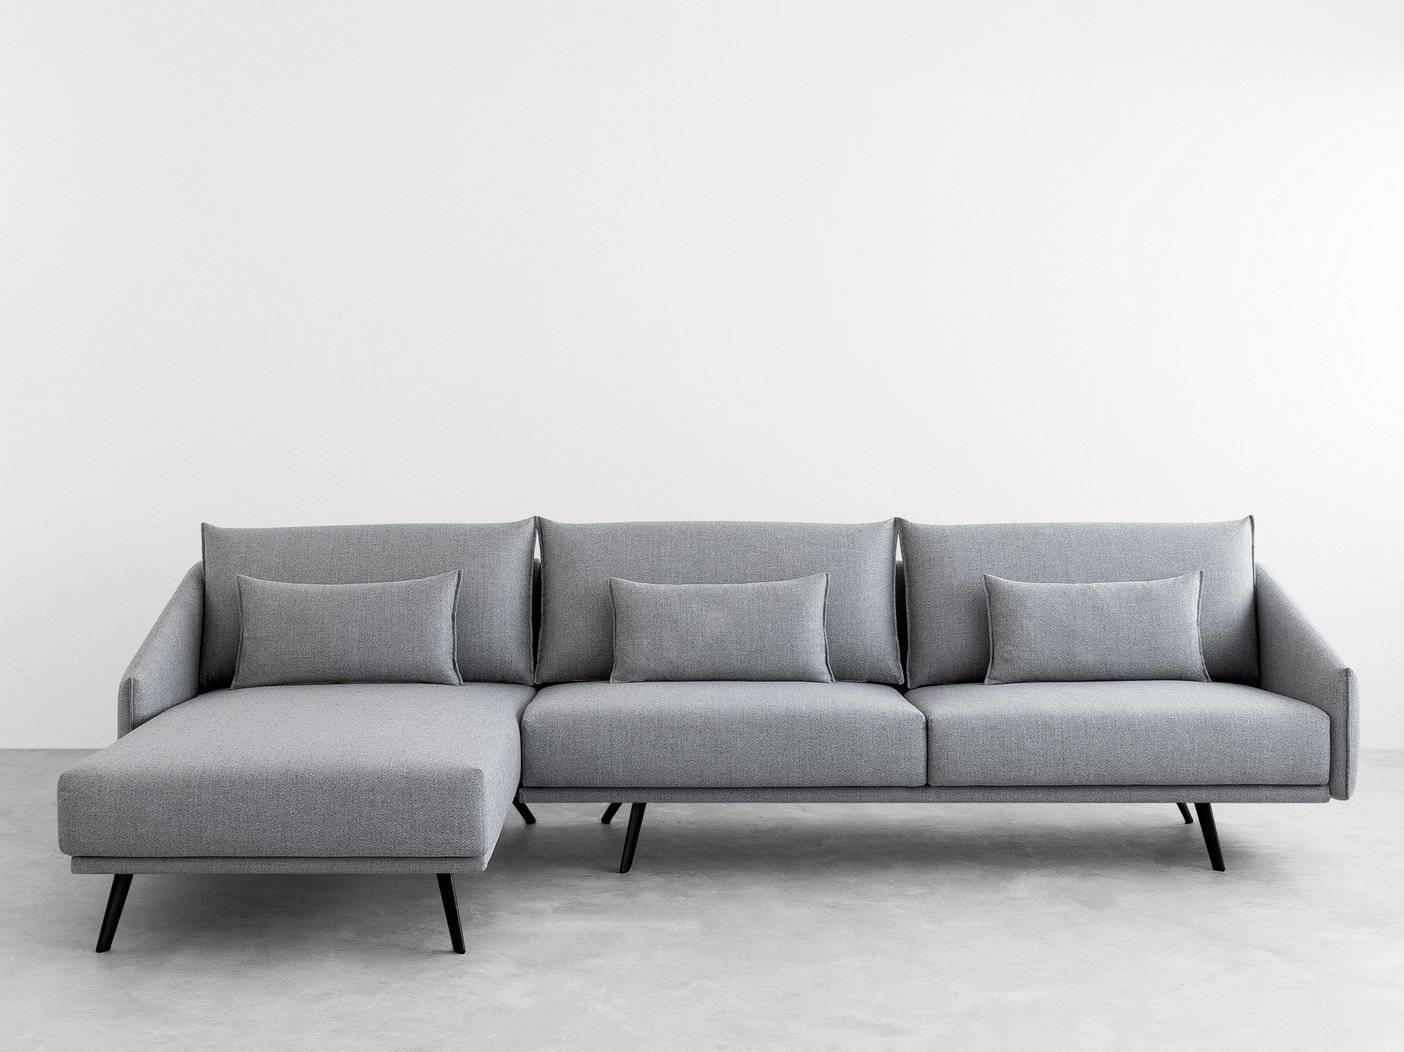 Costura sofa with chaise longue costura collection by stua for Chaise longue furniture